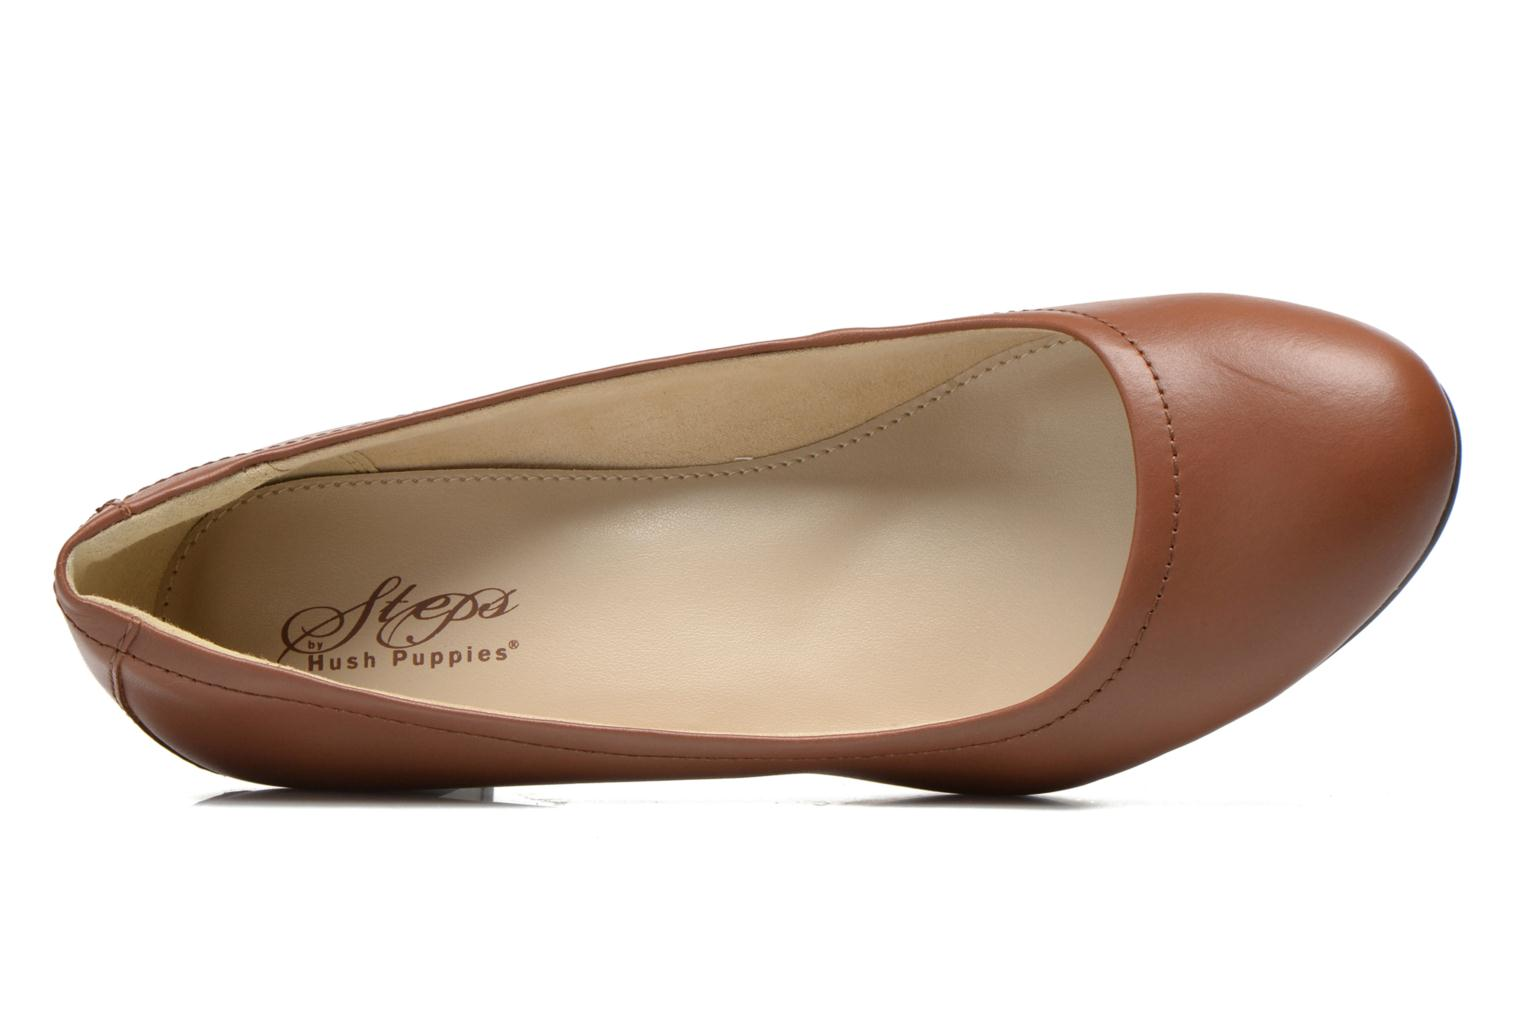 Aven Imagery Tan Leather